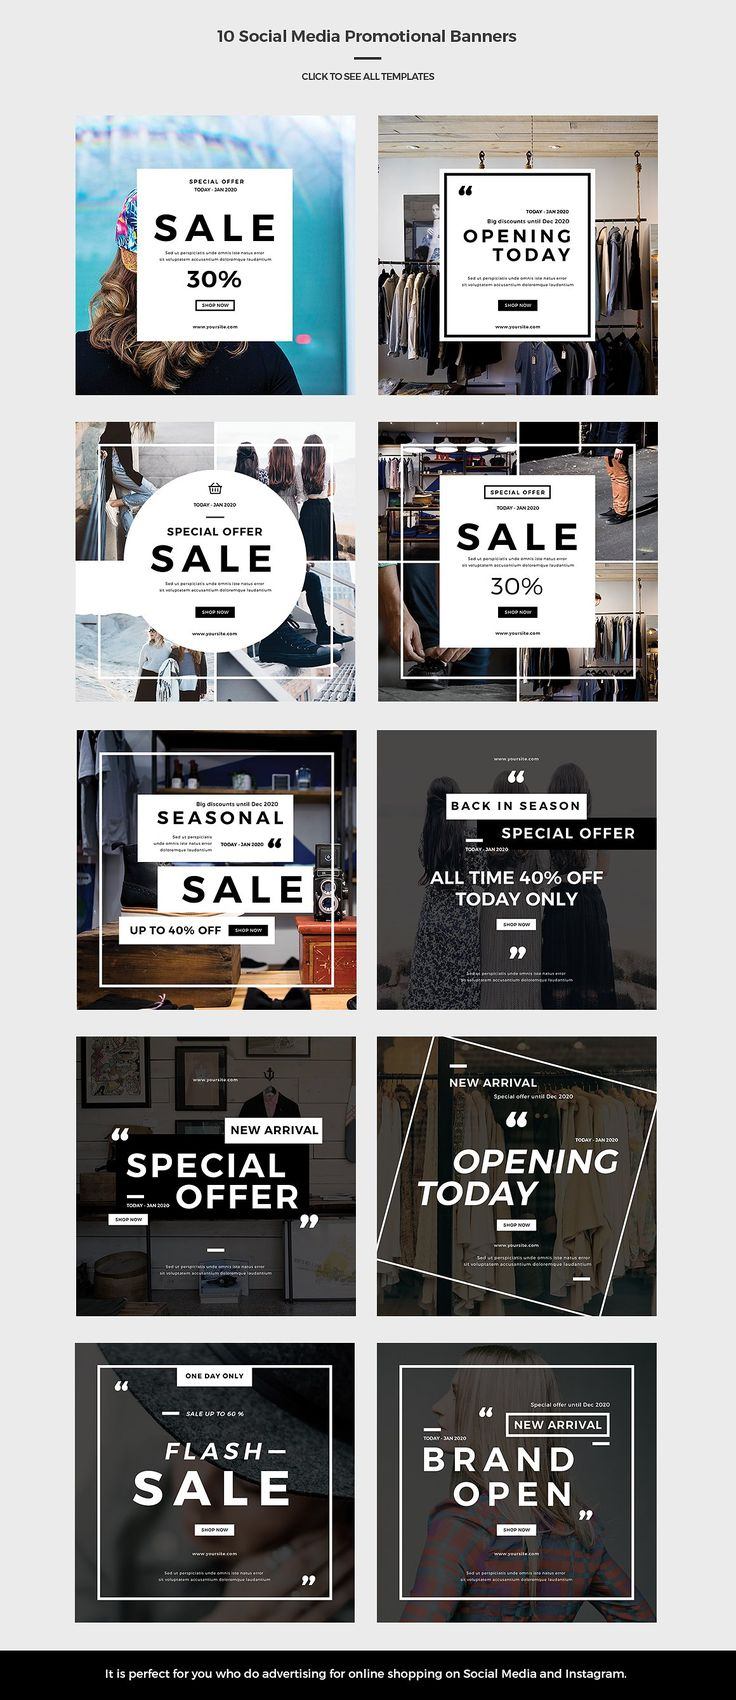 Social Media Promotional Banners by Hello.space on @creativemarket